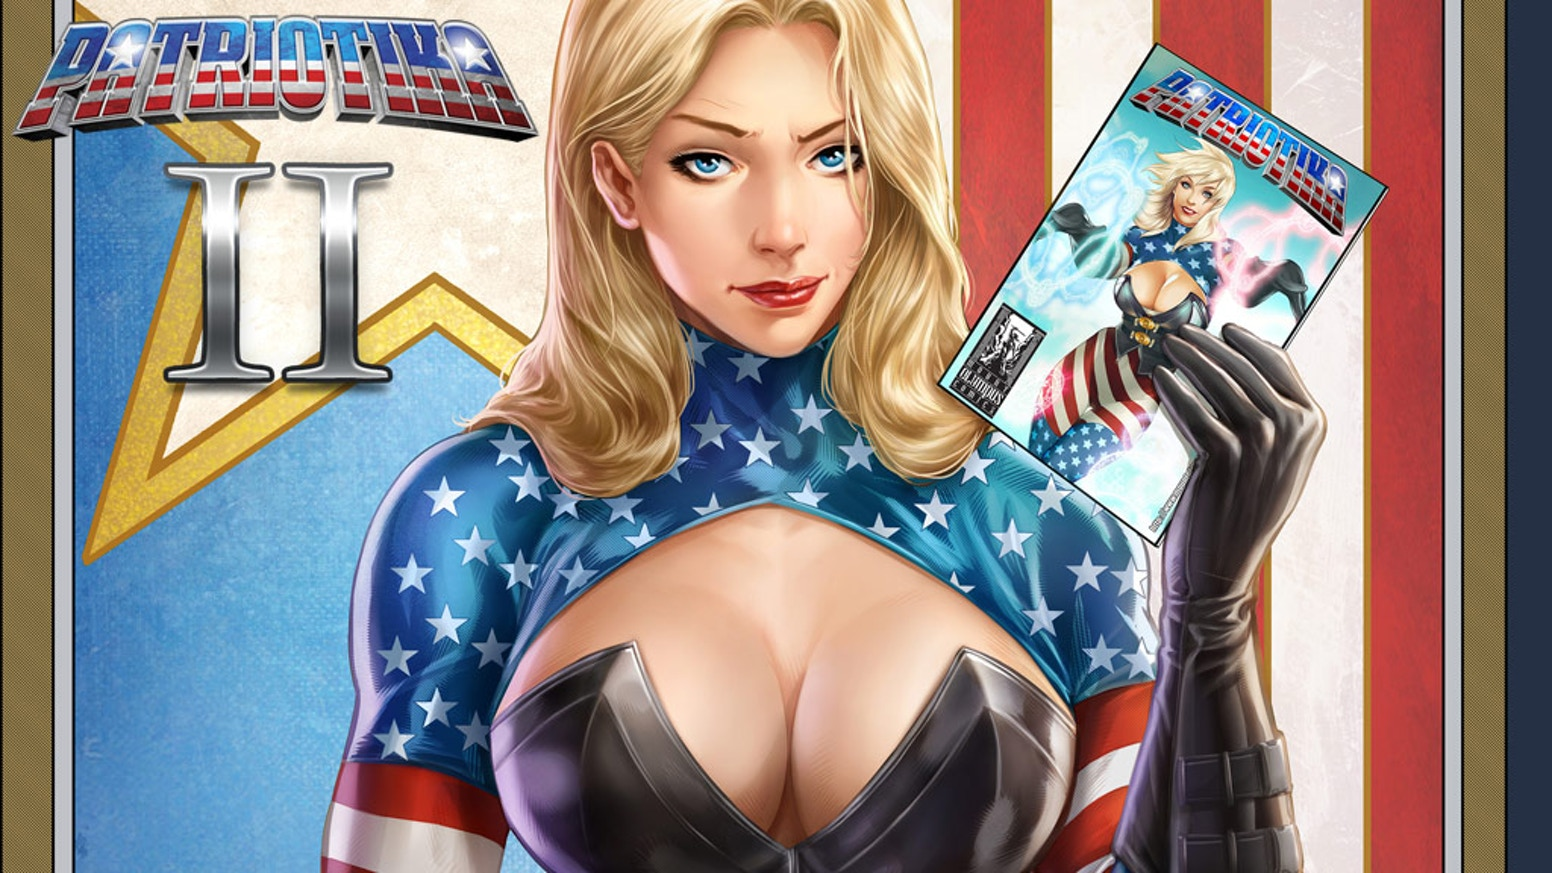 PATRIOTIKA 2 is the top crowdfunding project launched today. PATRIOTIKA 2 raised over $49049 from 995 backers. Other top projects include Archileon -Change architecture. Build with a 3D printer., Nostalgia Knight - A game reminiscent of the 90's, E Equals - Original Sci-fi Feature Film...